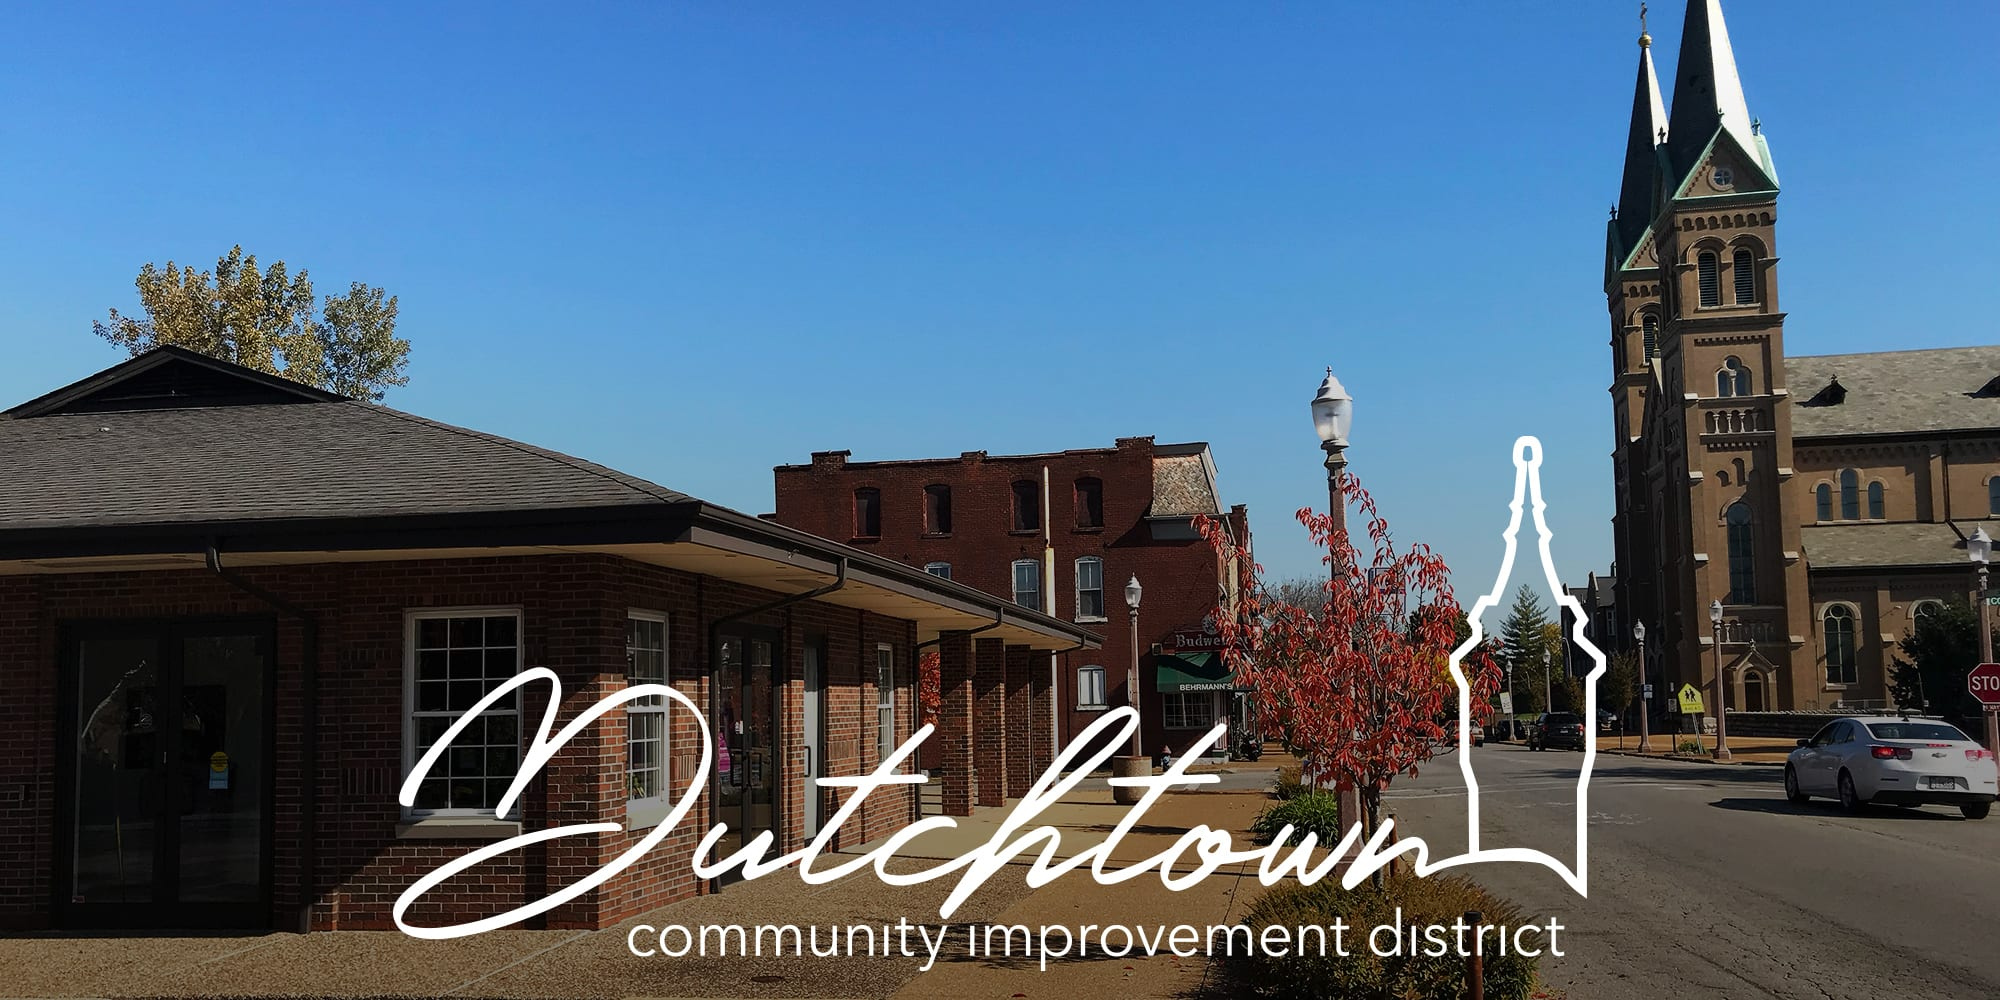 Dutchtown Community Improvement District meetings at the Neighborhood Innovation Center on Meramec Street in Dutchtown.